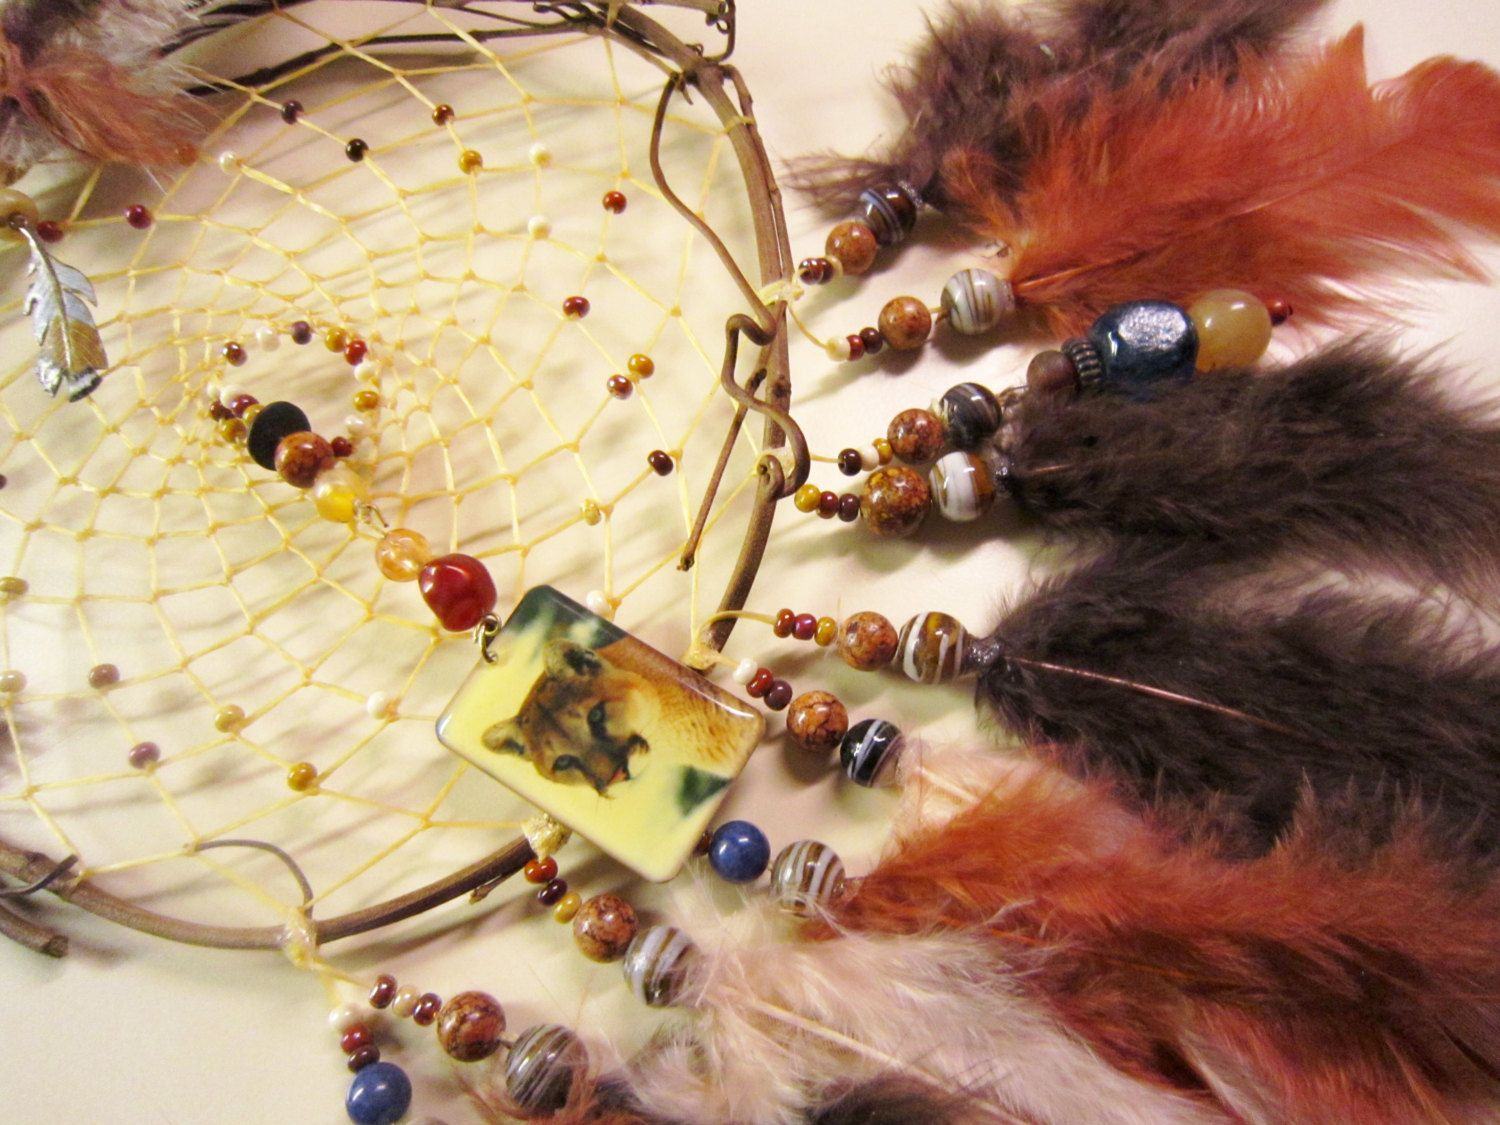 Horse Dancer's Handmade Catamount Dream Catcher by jungleeyejoe on Etsy